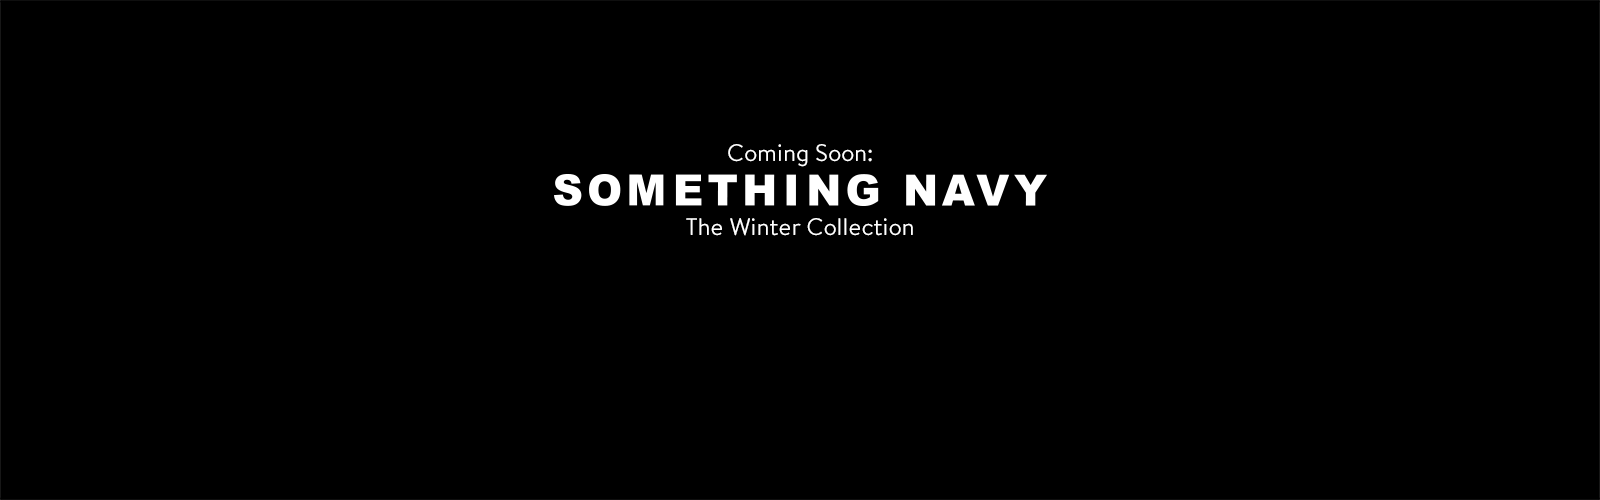 Coming soon: Something Navy, the winter collection.